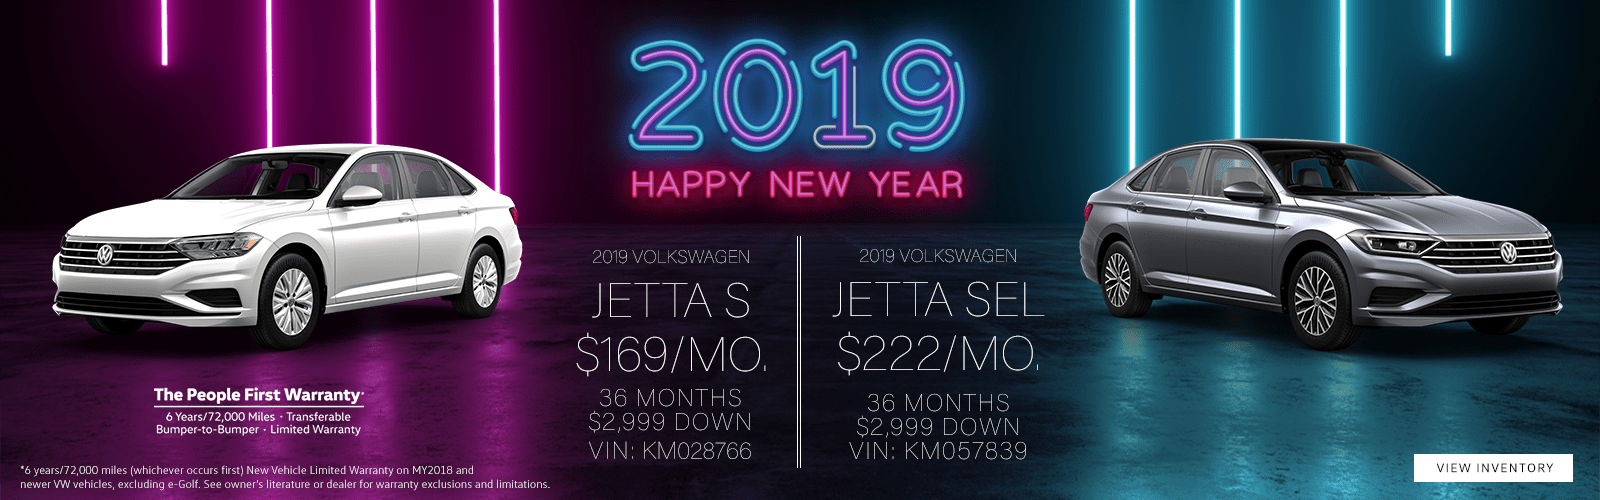 Jan '19 Volkswagen Jetta Lease